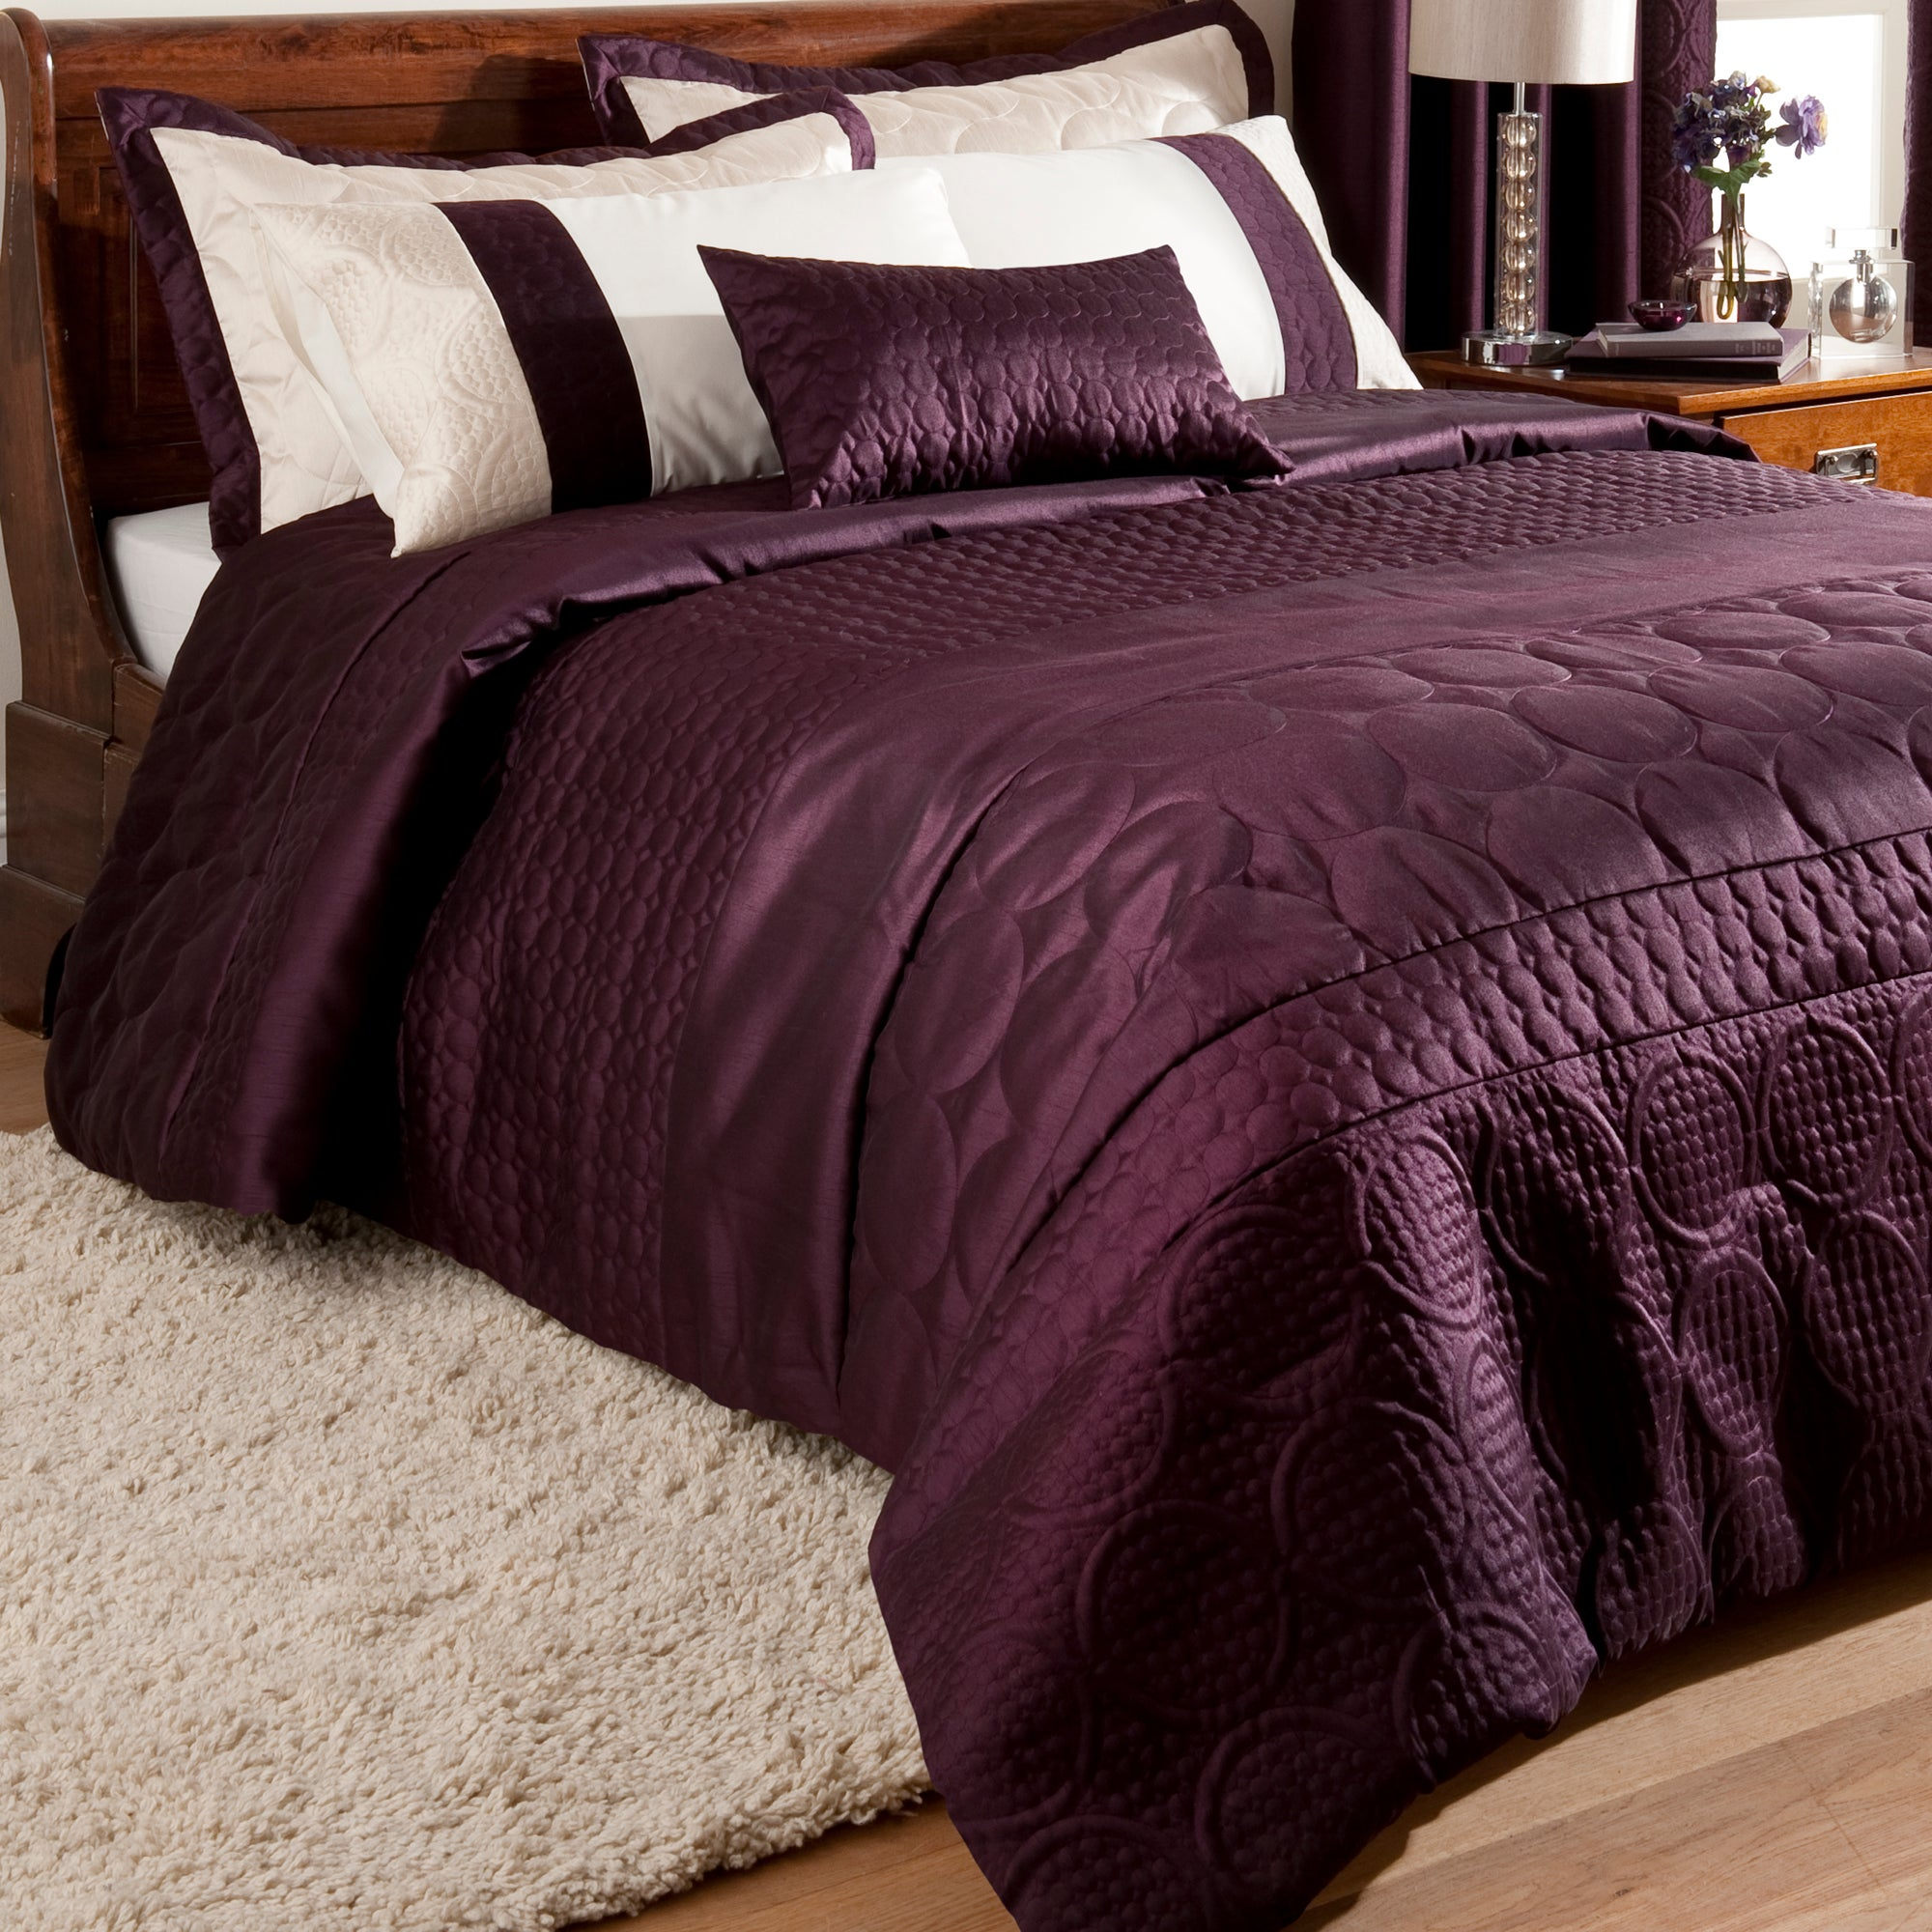 Plum Circles Collection Bedspread